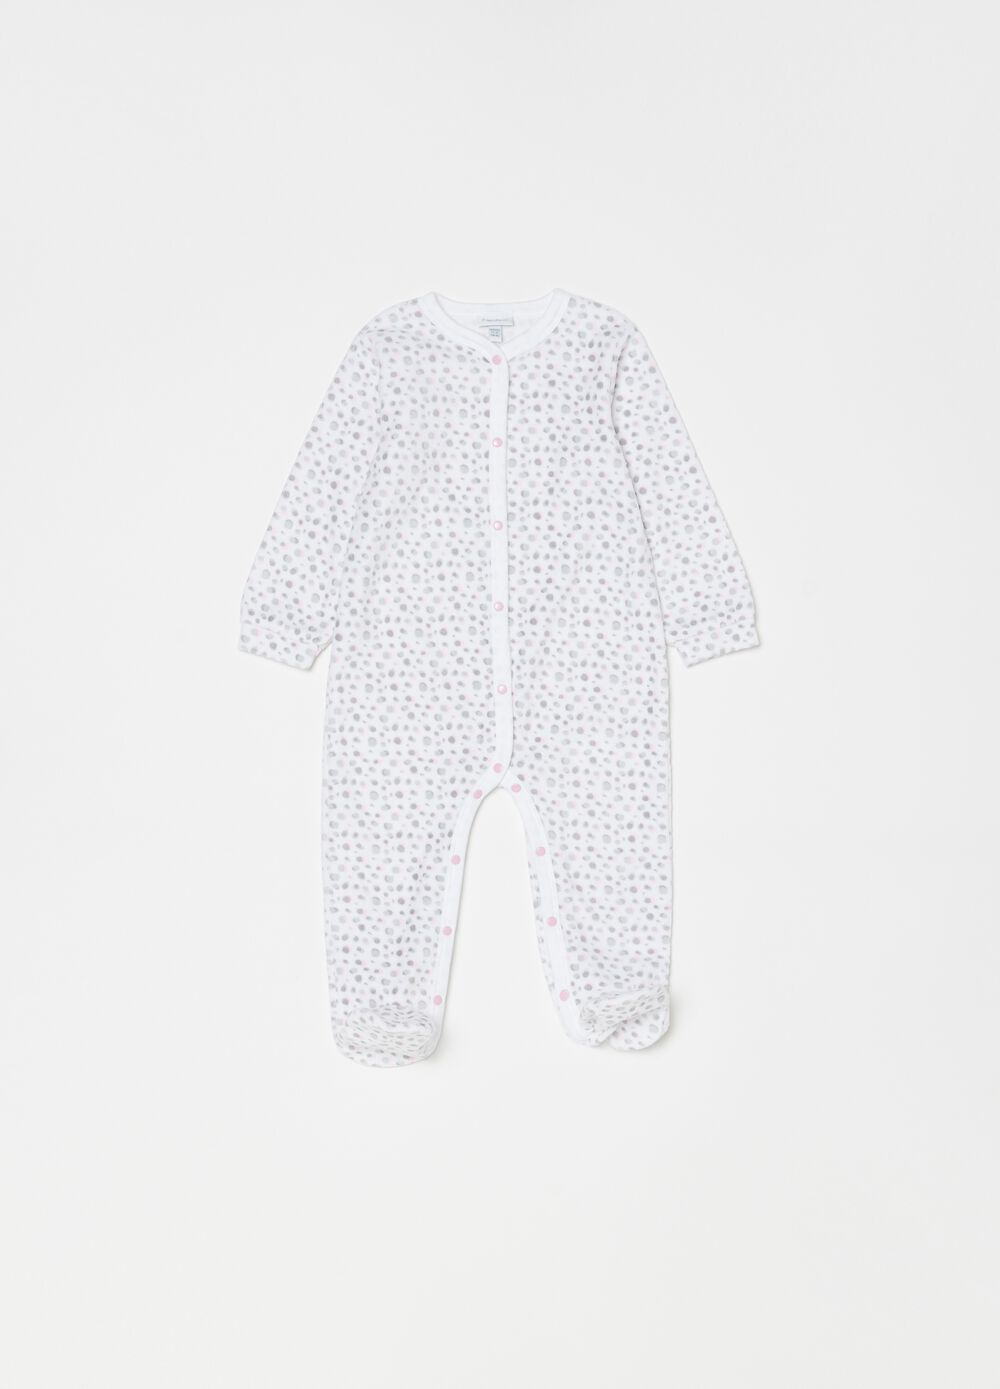 Onesie with feet and polka dot pattern